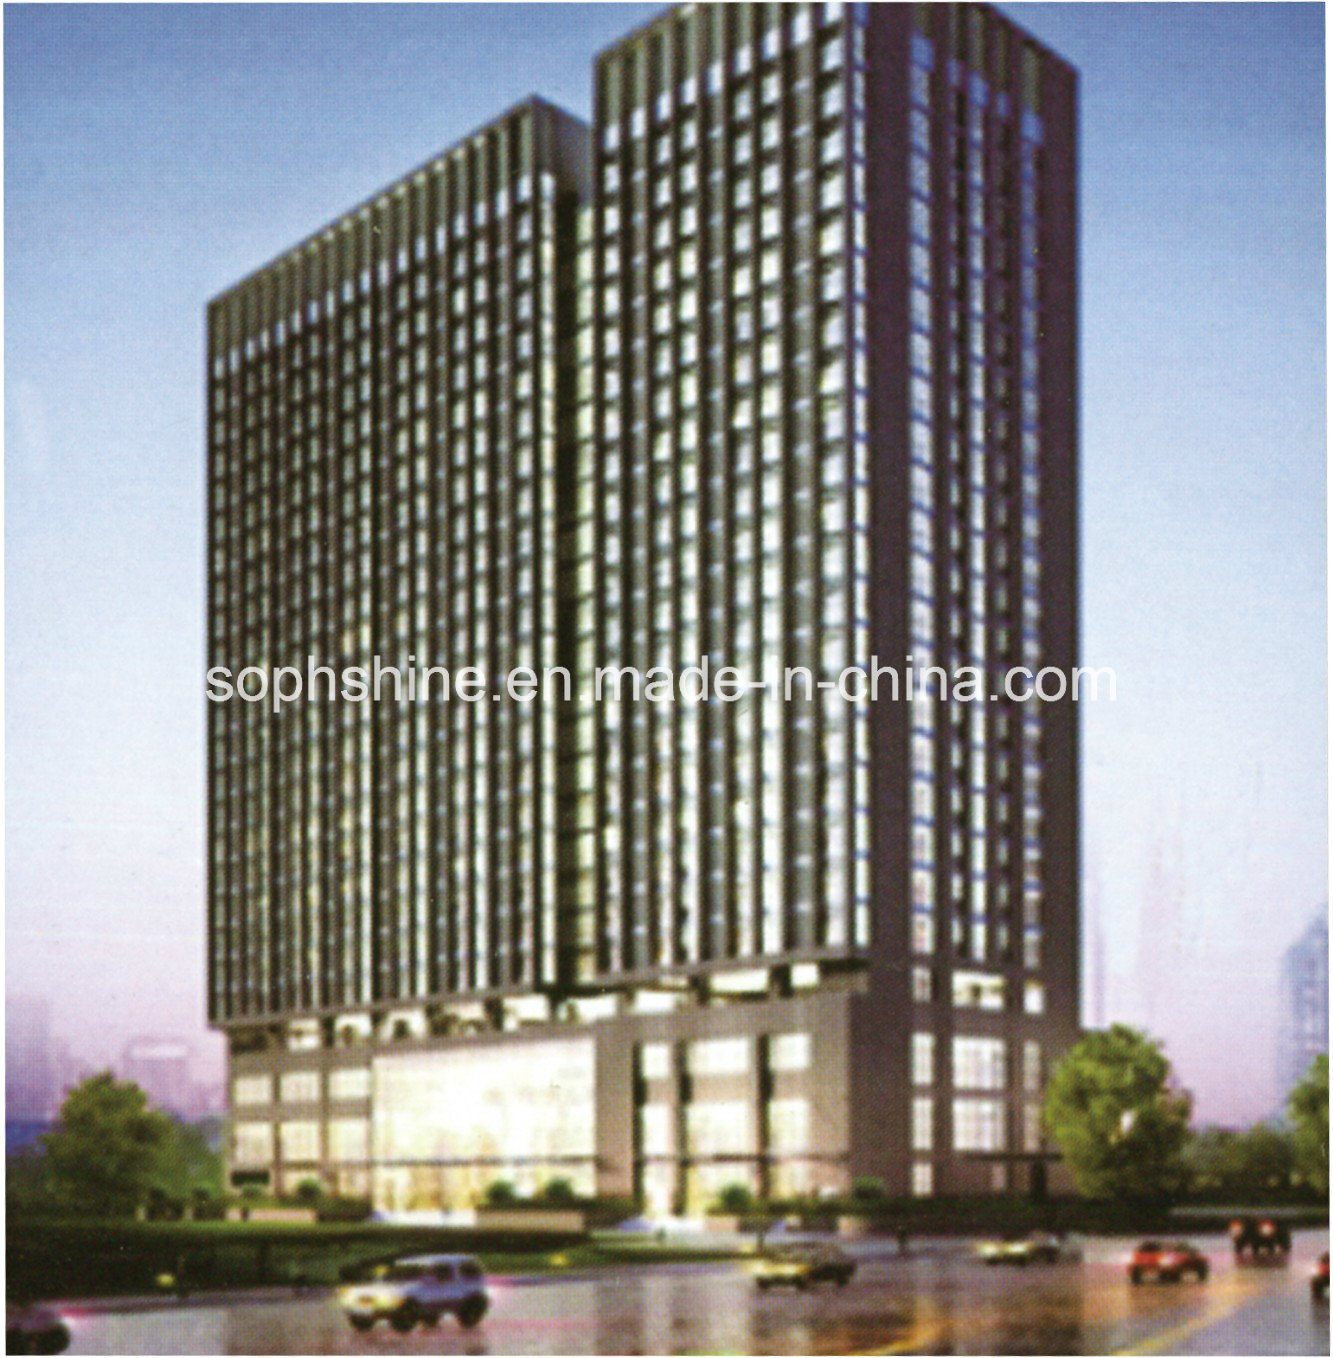 Insulated Glass Curtain Wall New Design with Built in Motorized Venetian Blinds